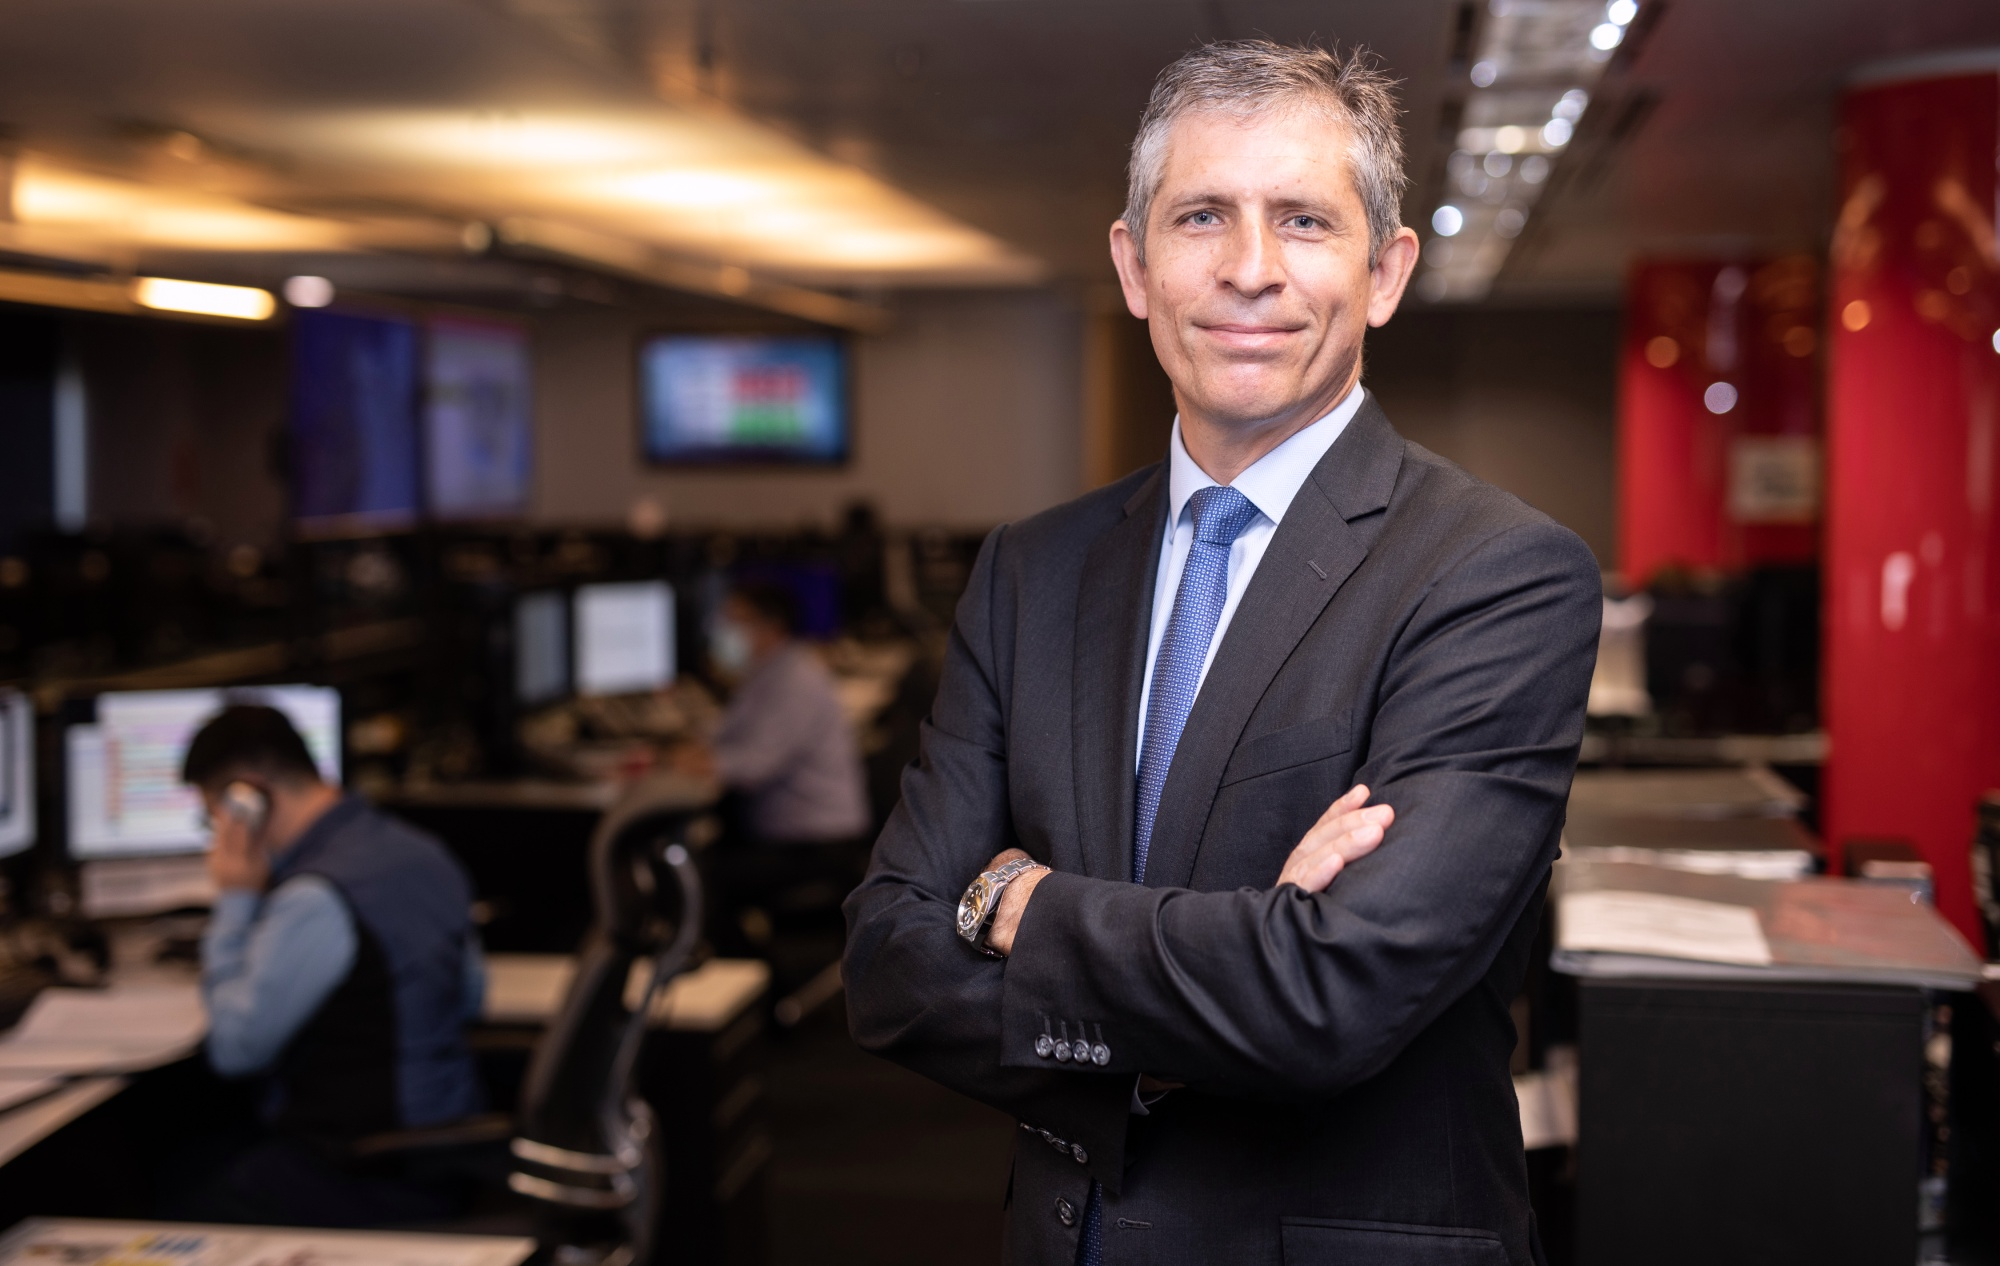 Jon Toller, General Manager of Integrated Operations Centre, Cathay Pacific